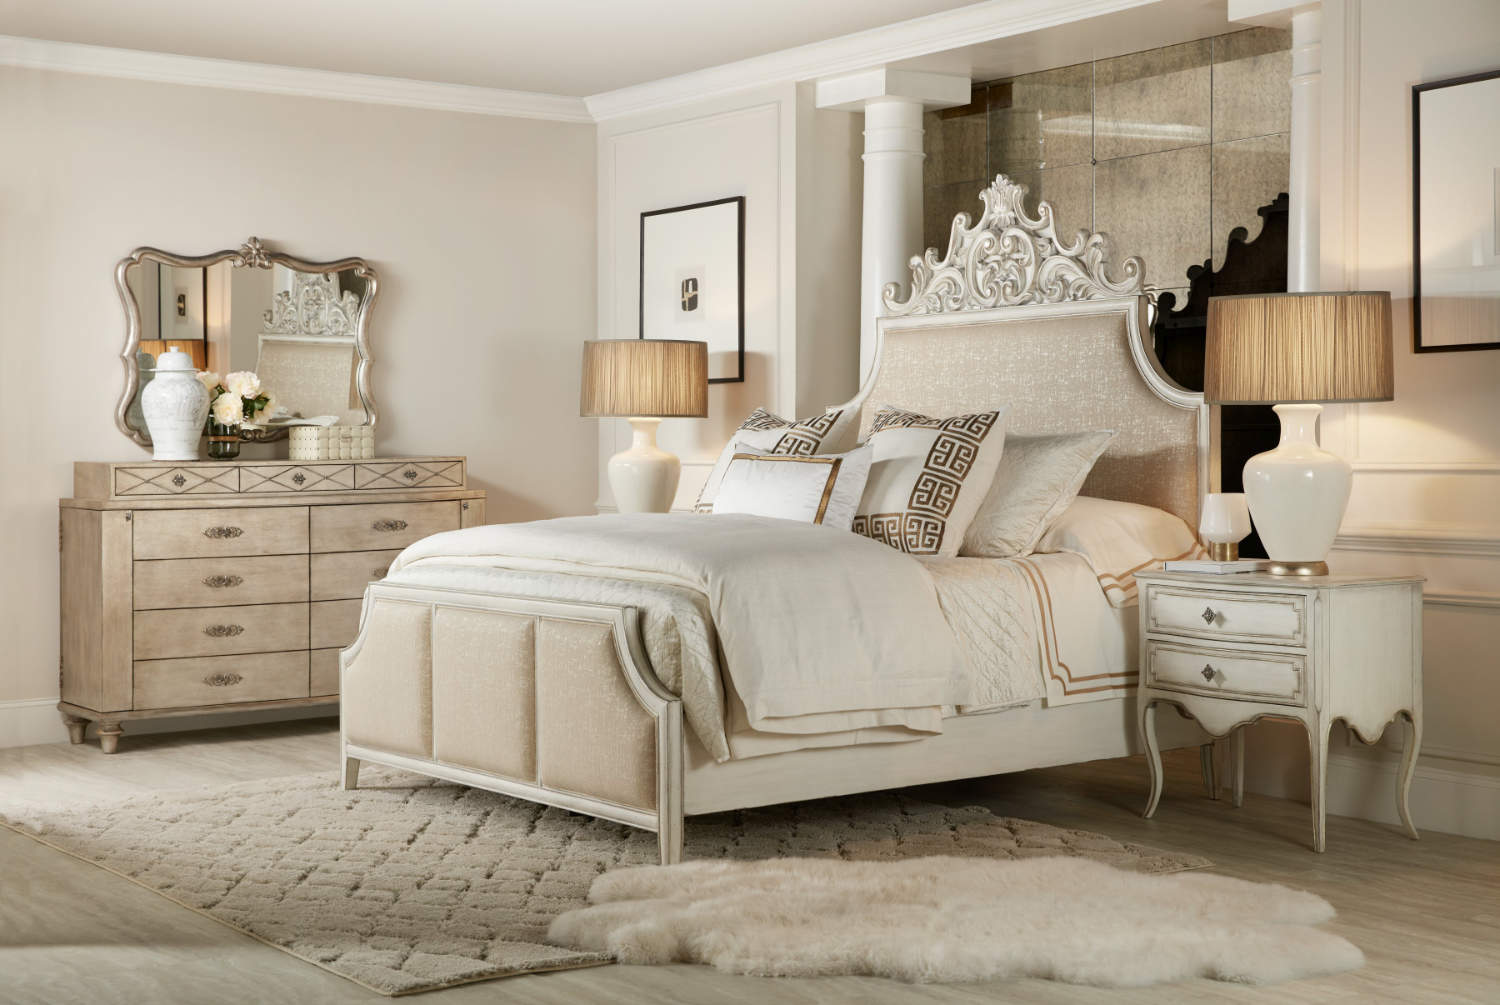 Hooker Furniture Sanctuary Collection Anastasie Upholstered Bed Room Scene.jpg